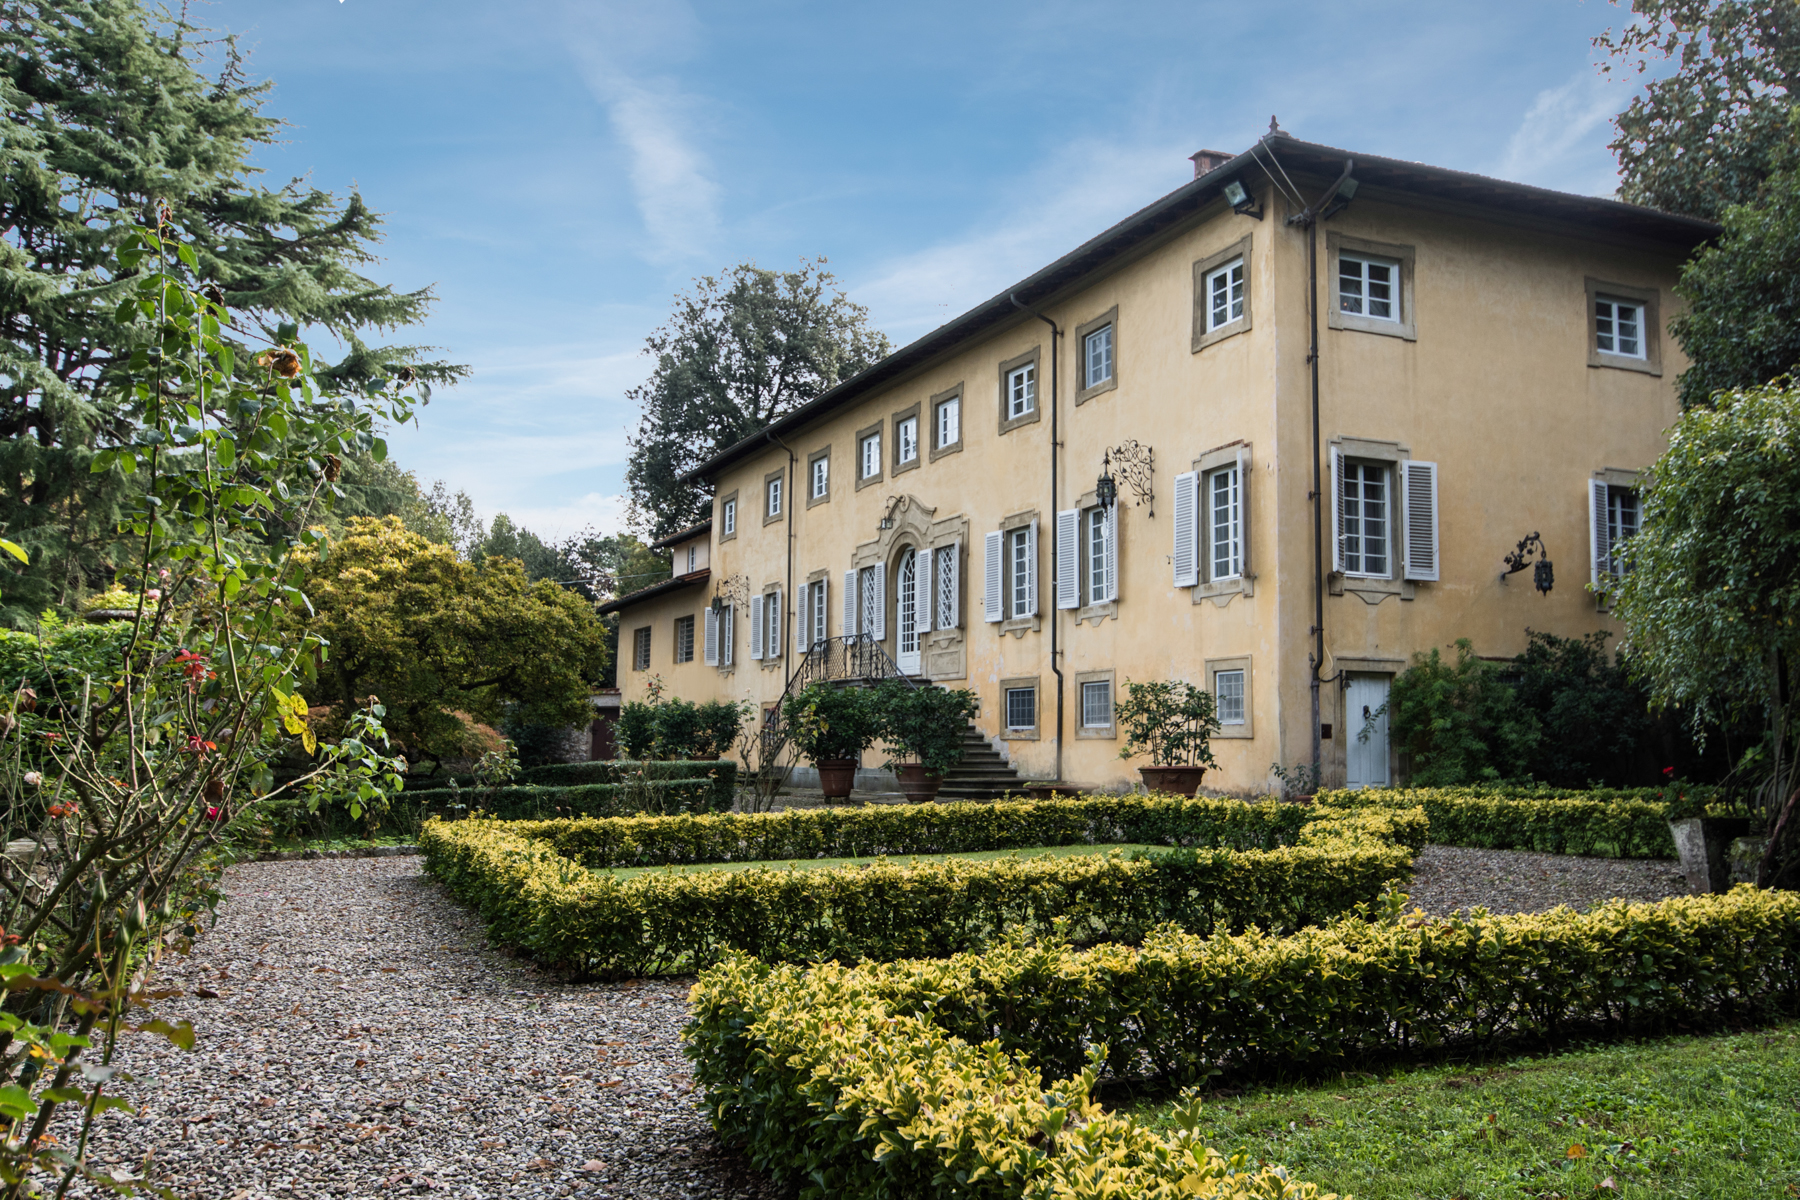 Additional photo for property listing at Charming 18th century villa in Lucca countryside Loc. Montuolo Lucca, Lucca 55100 Italie